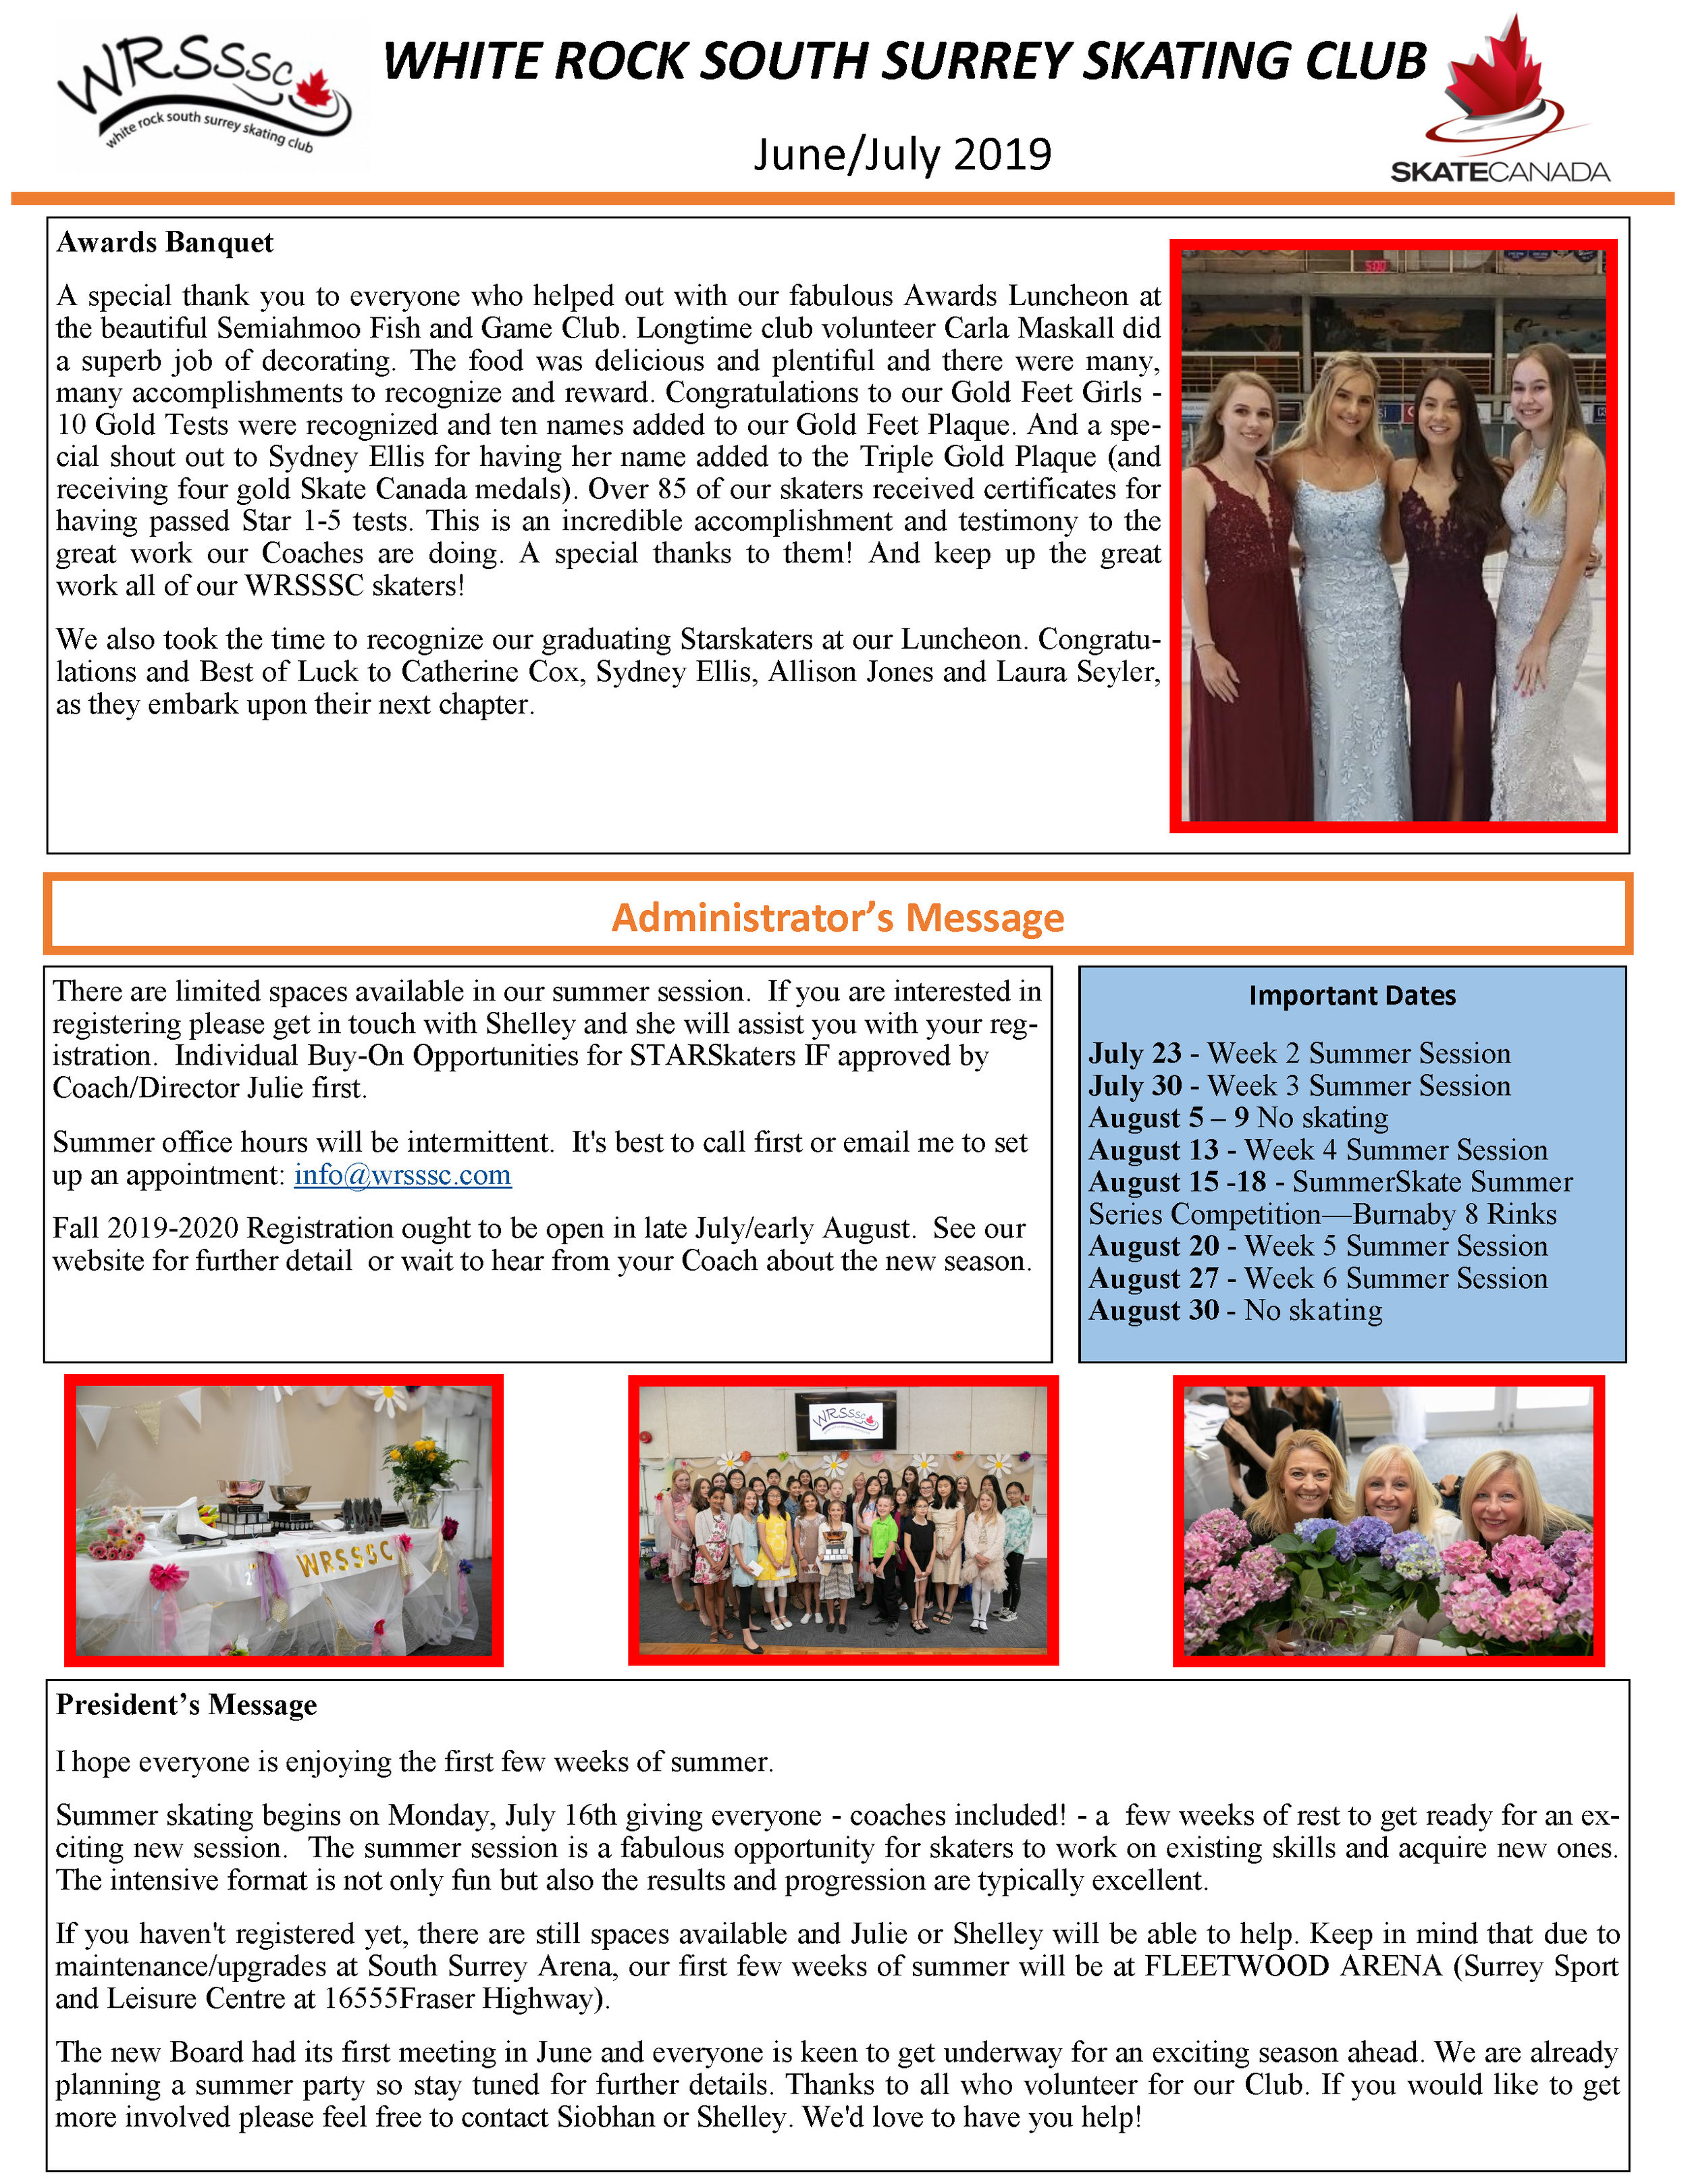 WRSSSC Newsletter June-July 2019 1.jpg